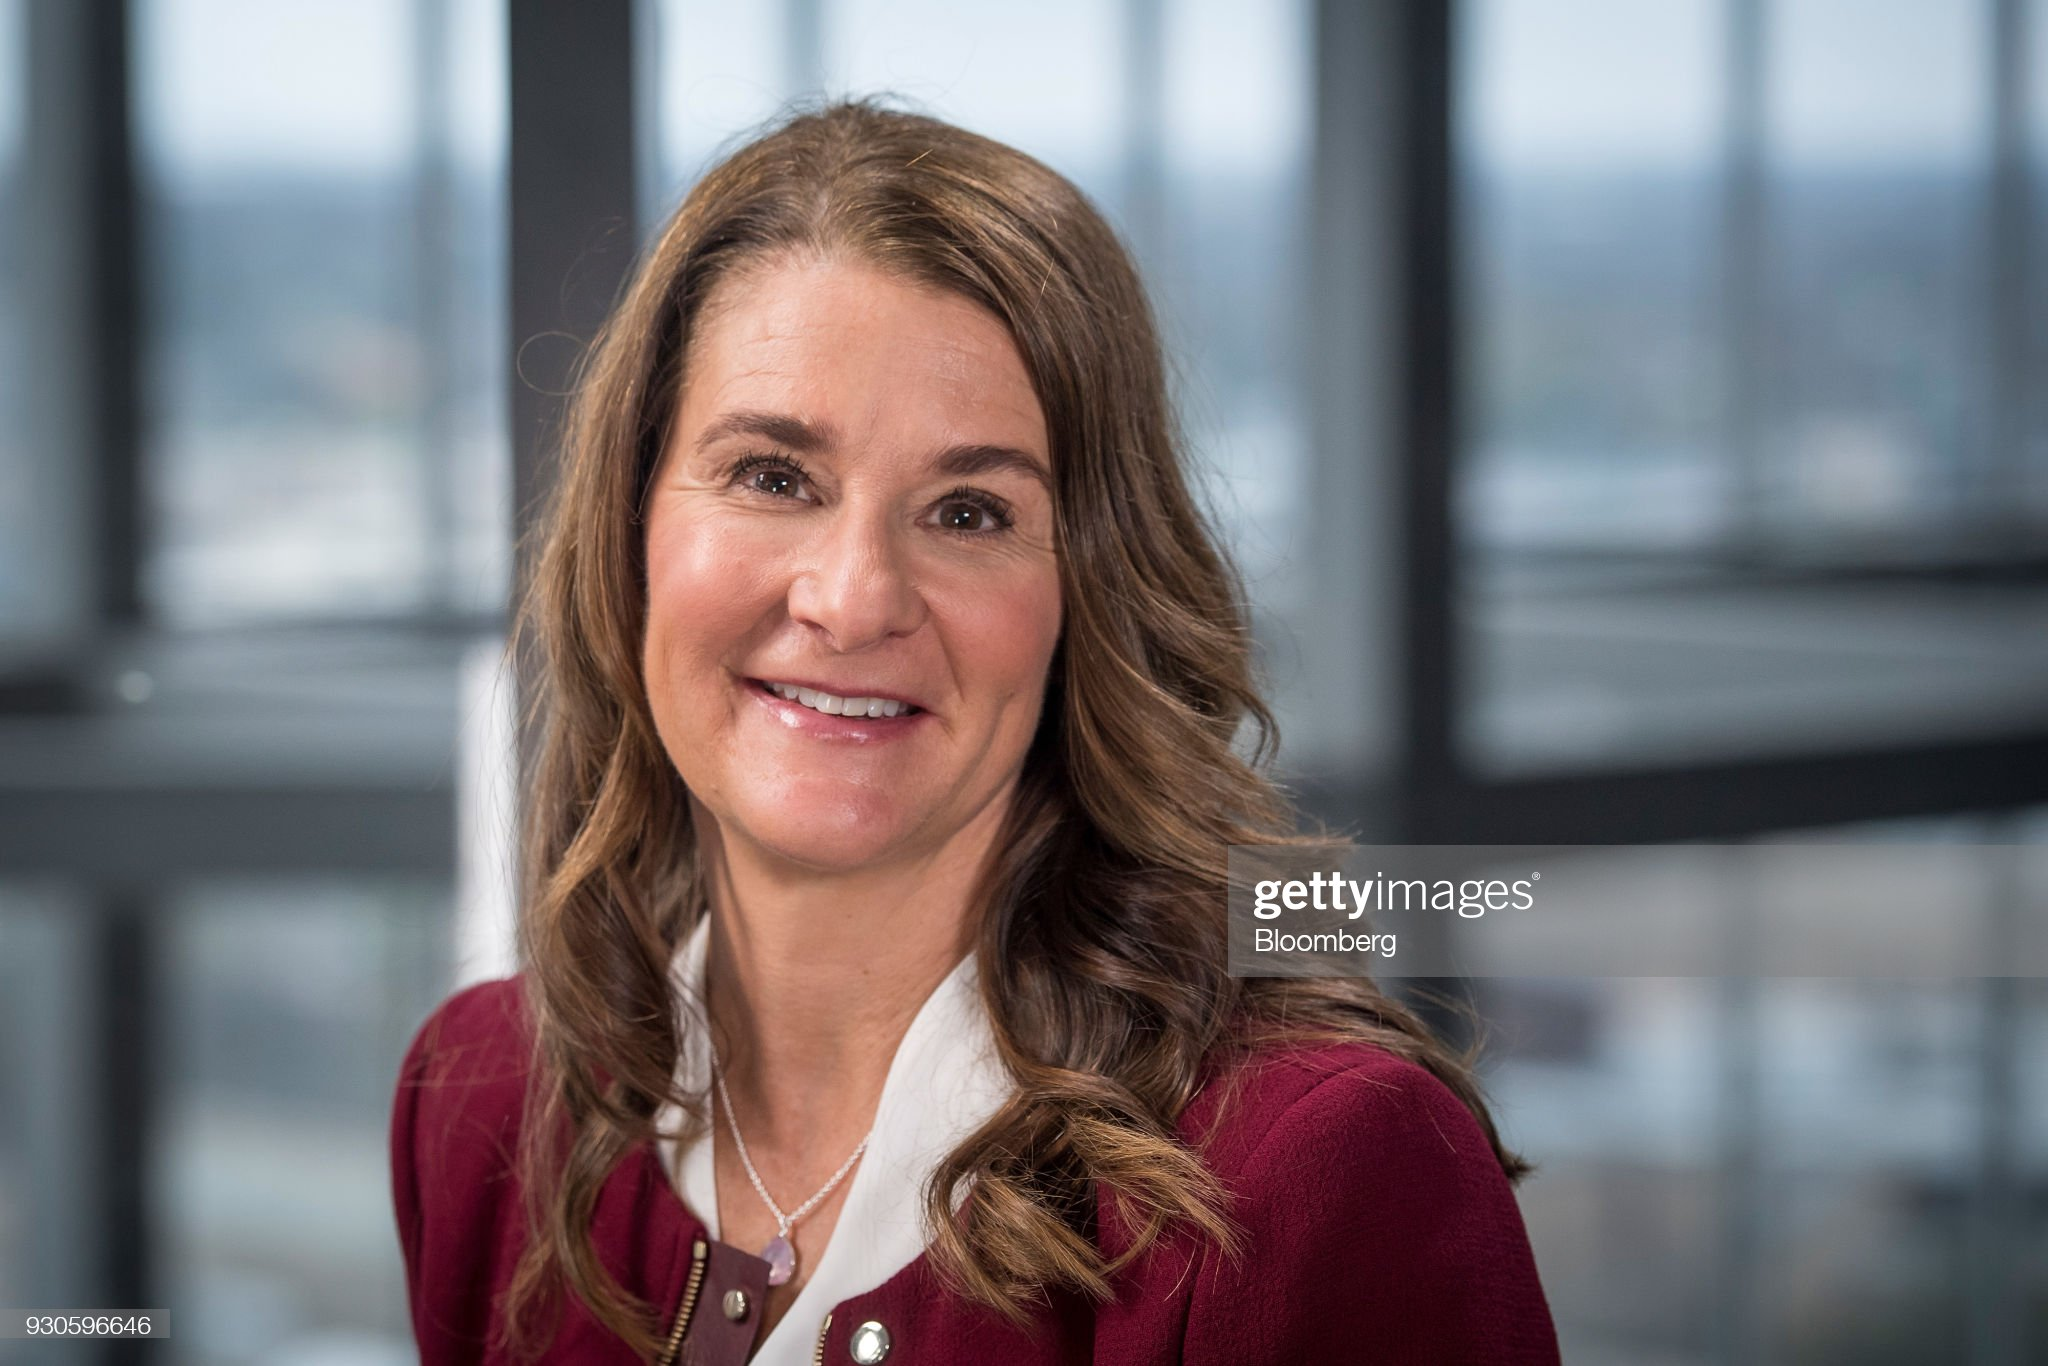 Have you seen the tweets towards Melinda Gates?